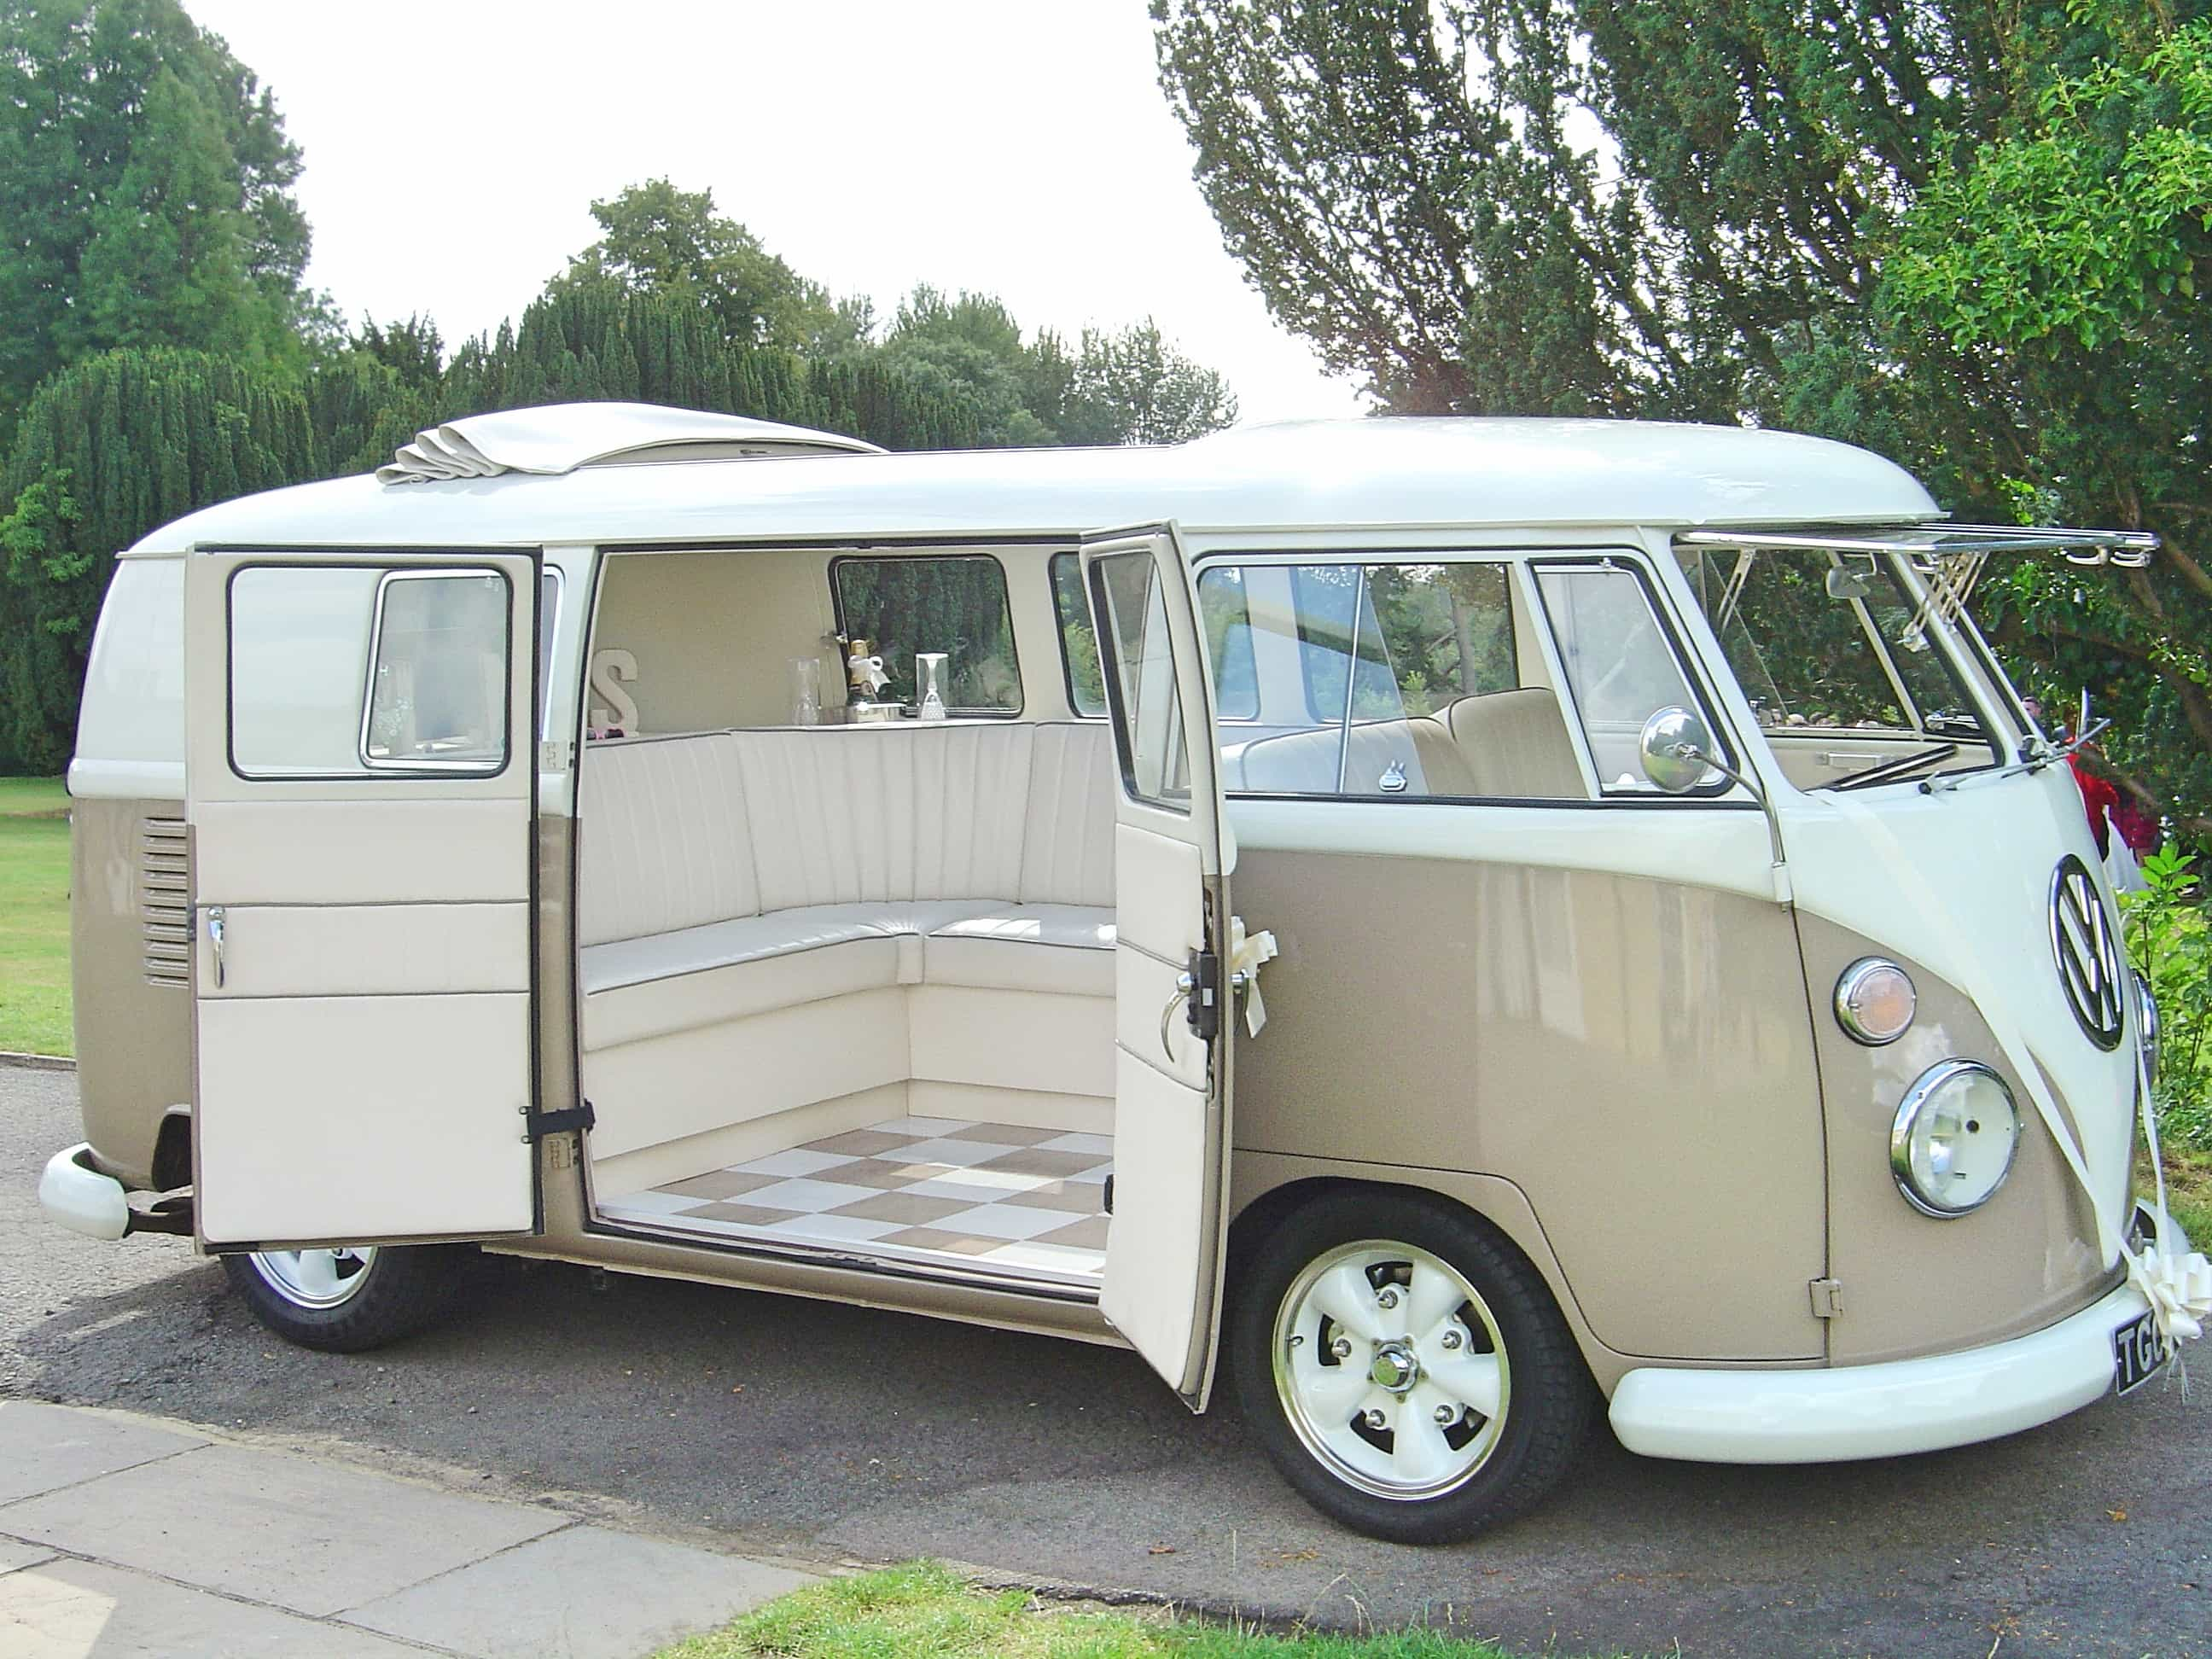 Camper Cars Our Vw Cars Silk And Satin Vw Camper Weddings